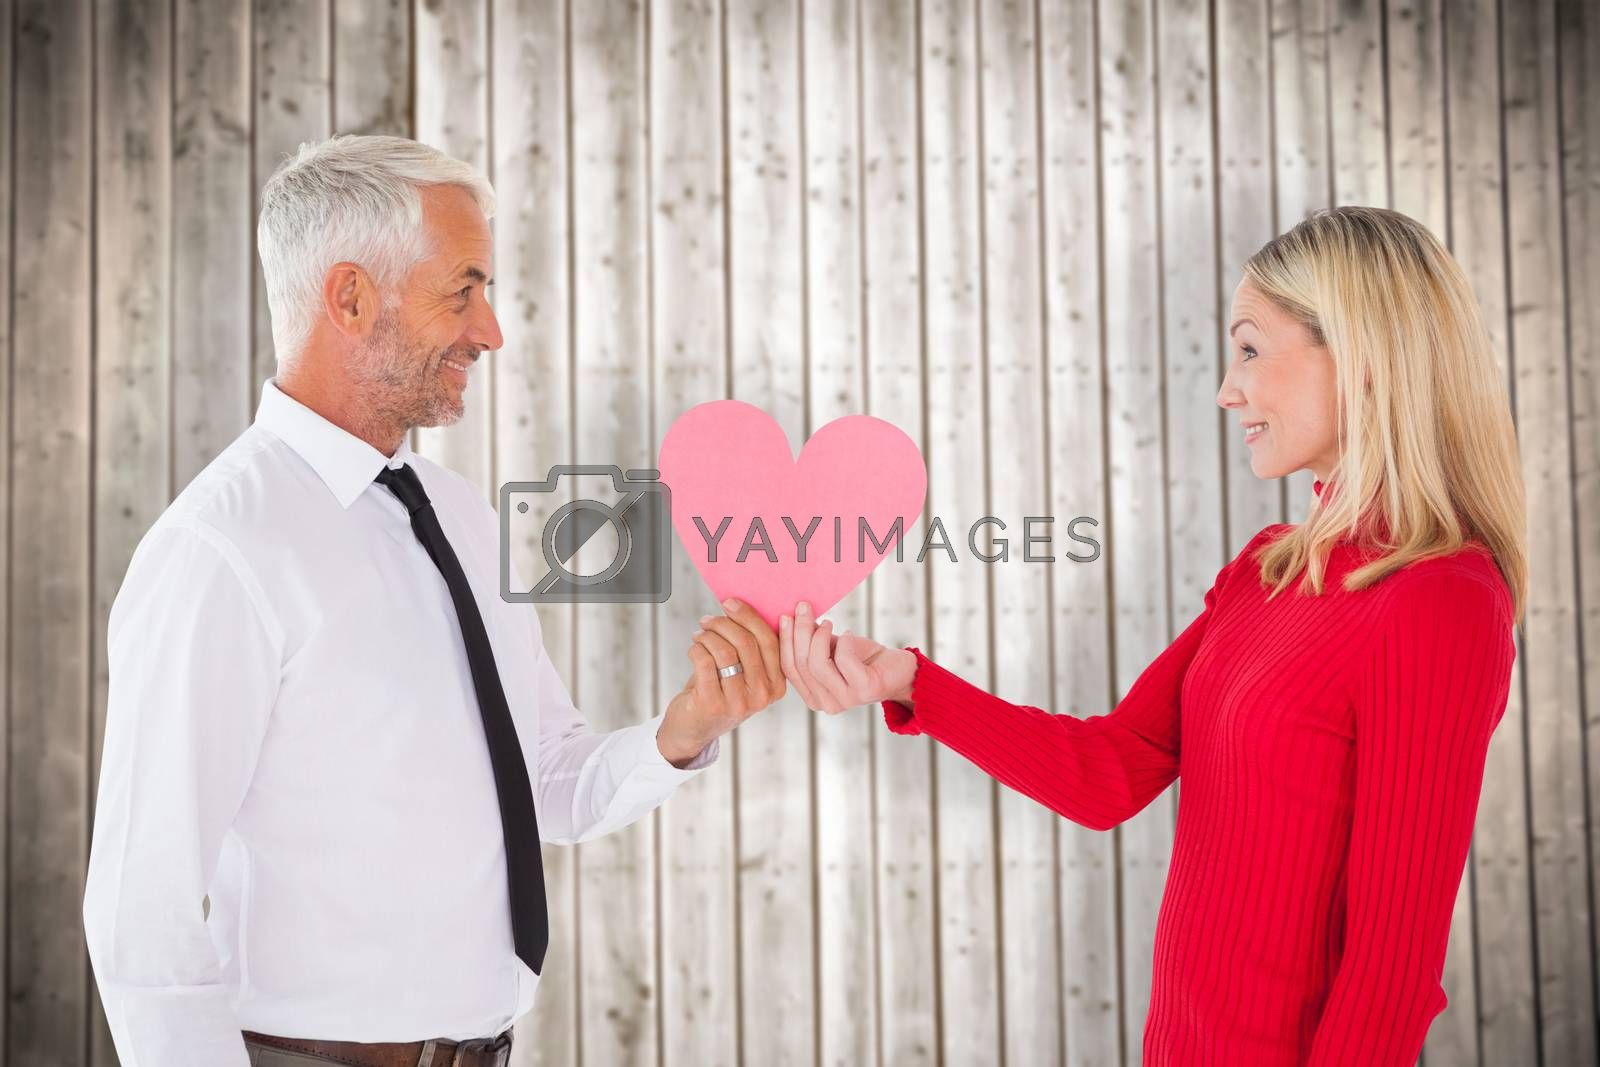 Handsome man getting a heart card form wife against wooden planks background